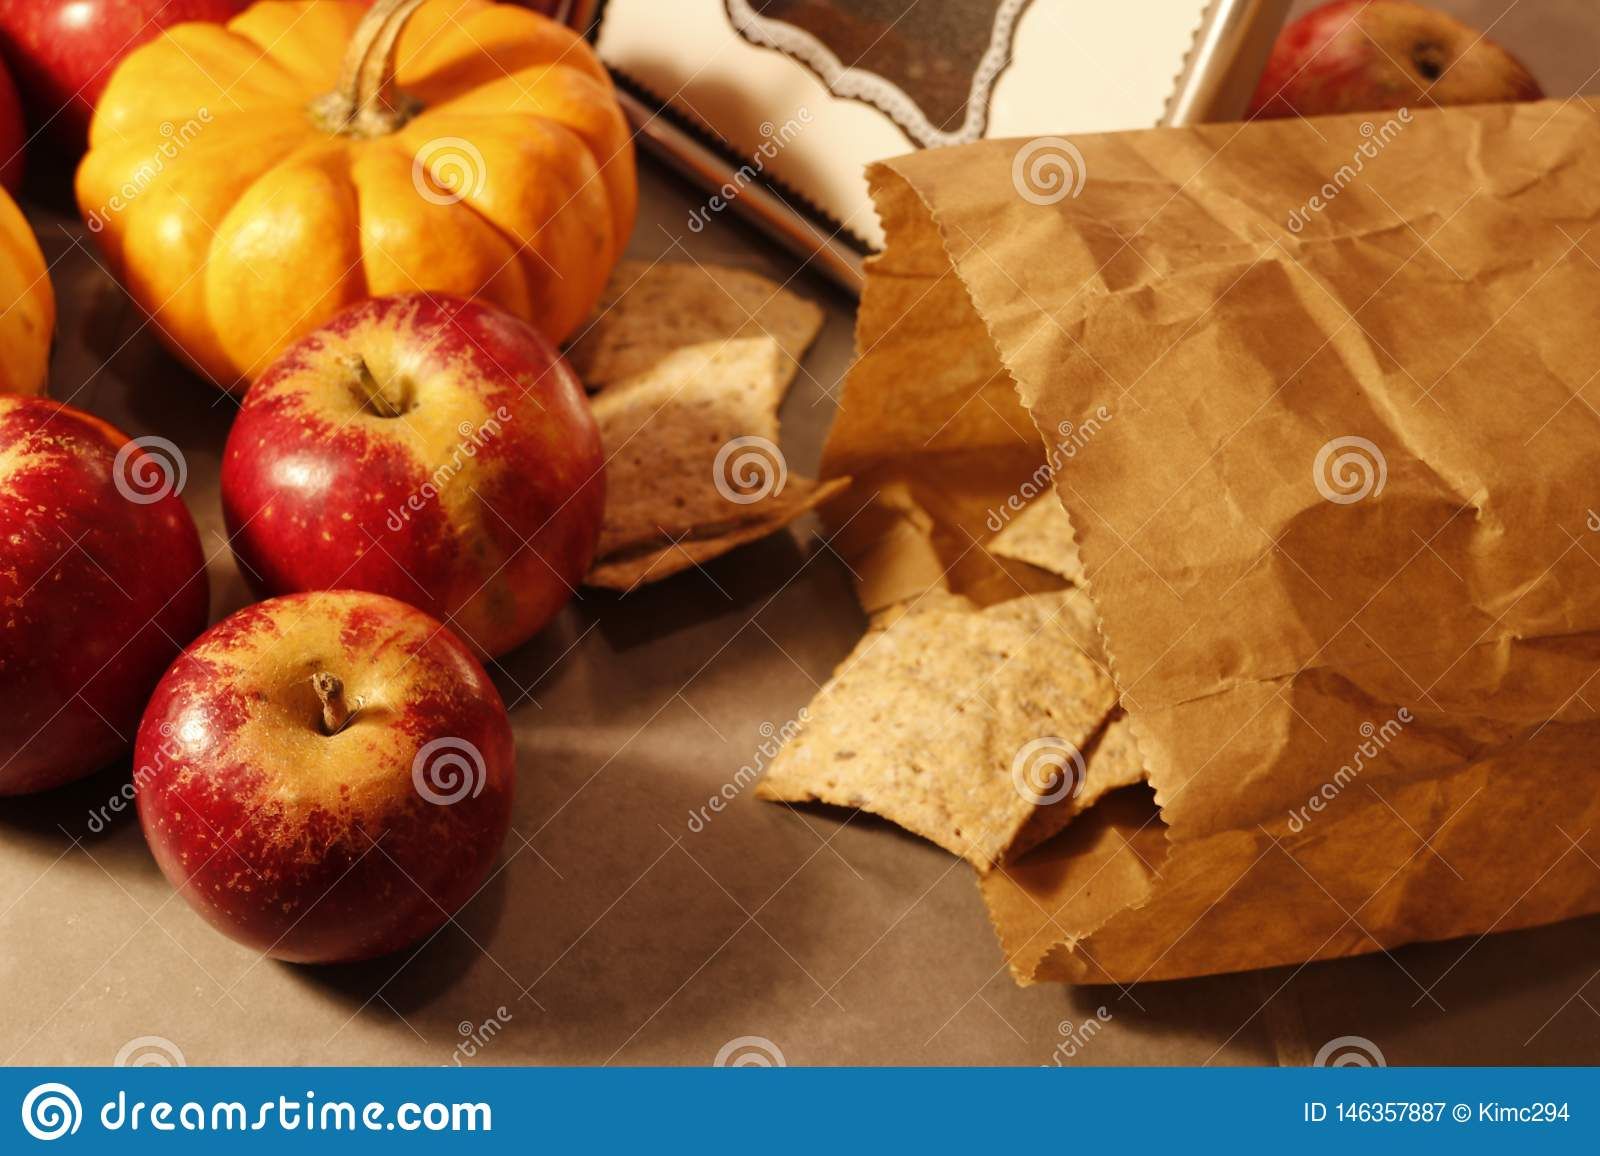 Close up on red apples and a paper bag of crispbread